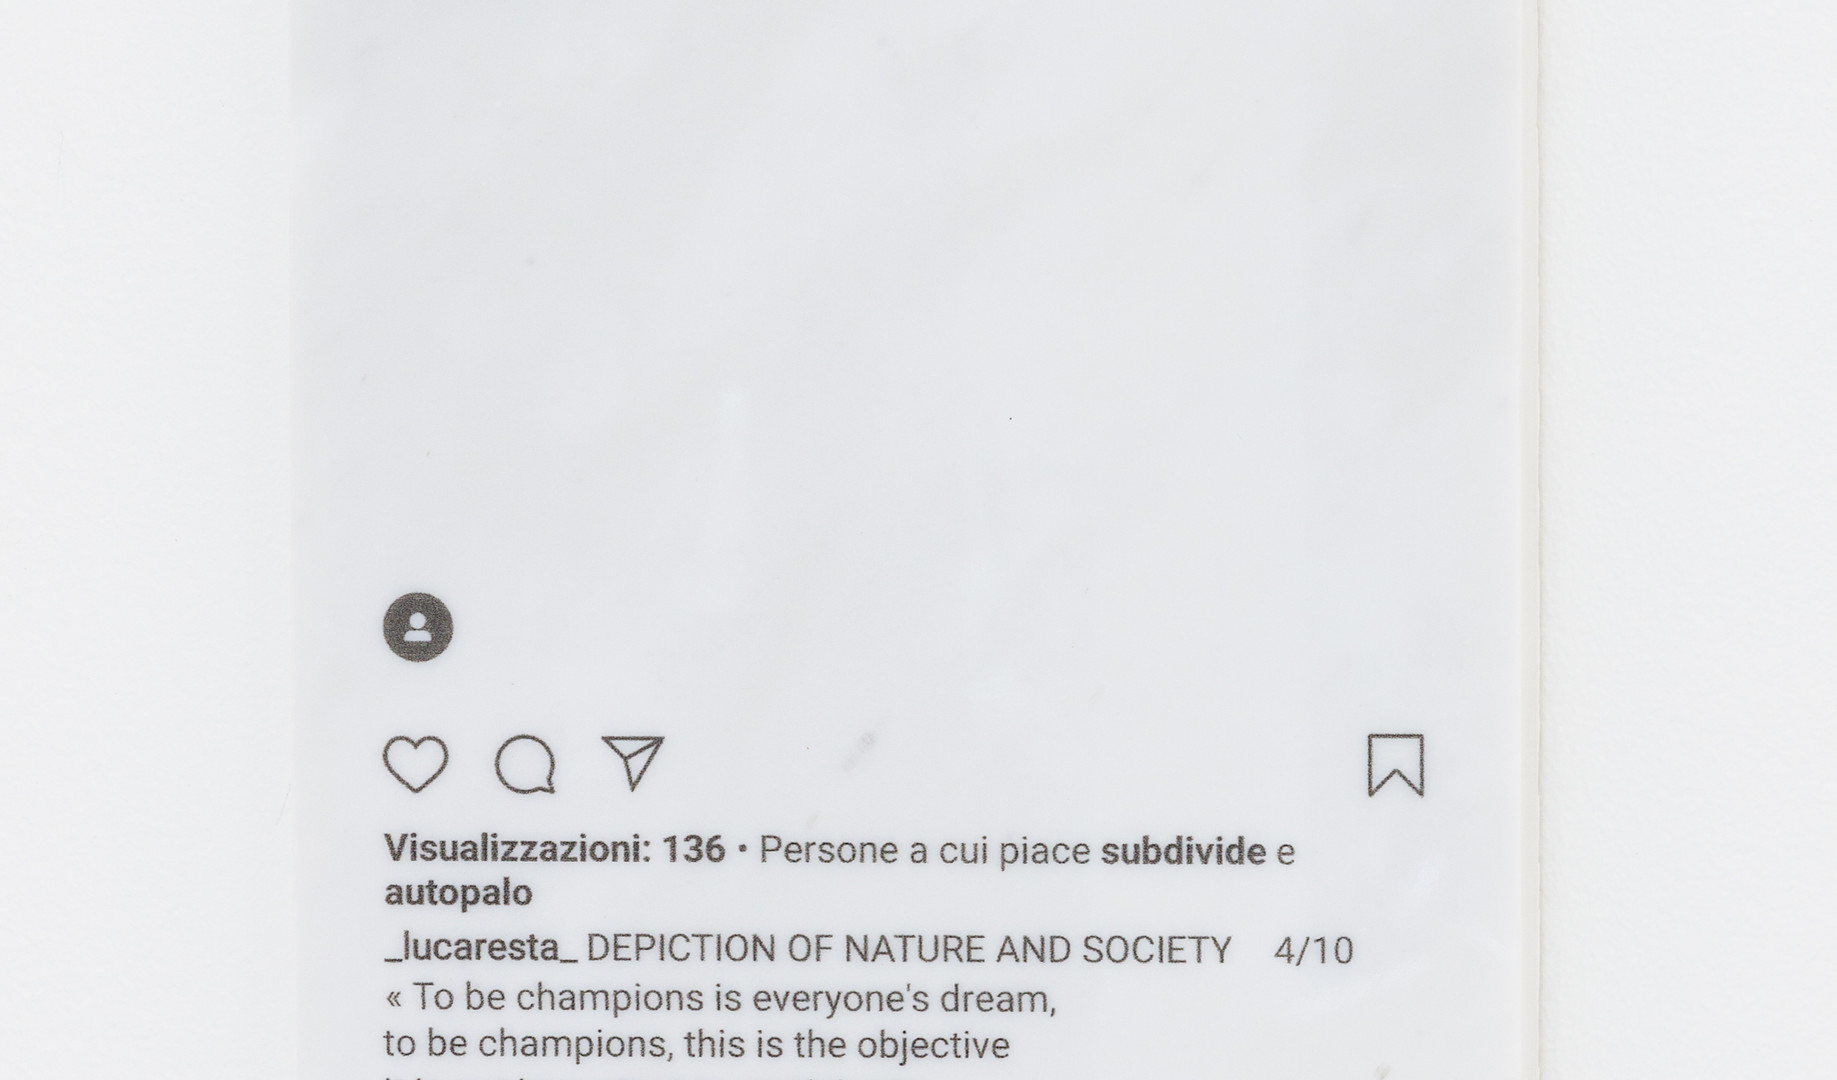 depiction of nature and society 4/10